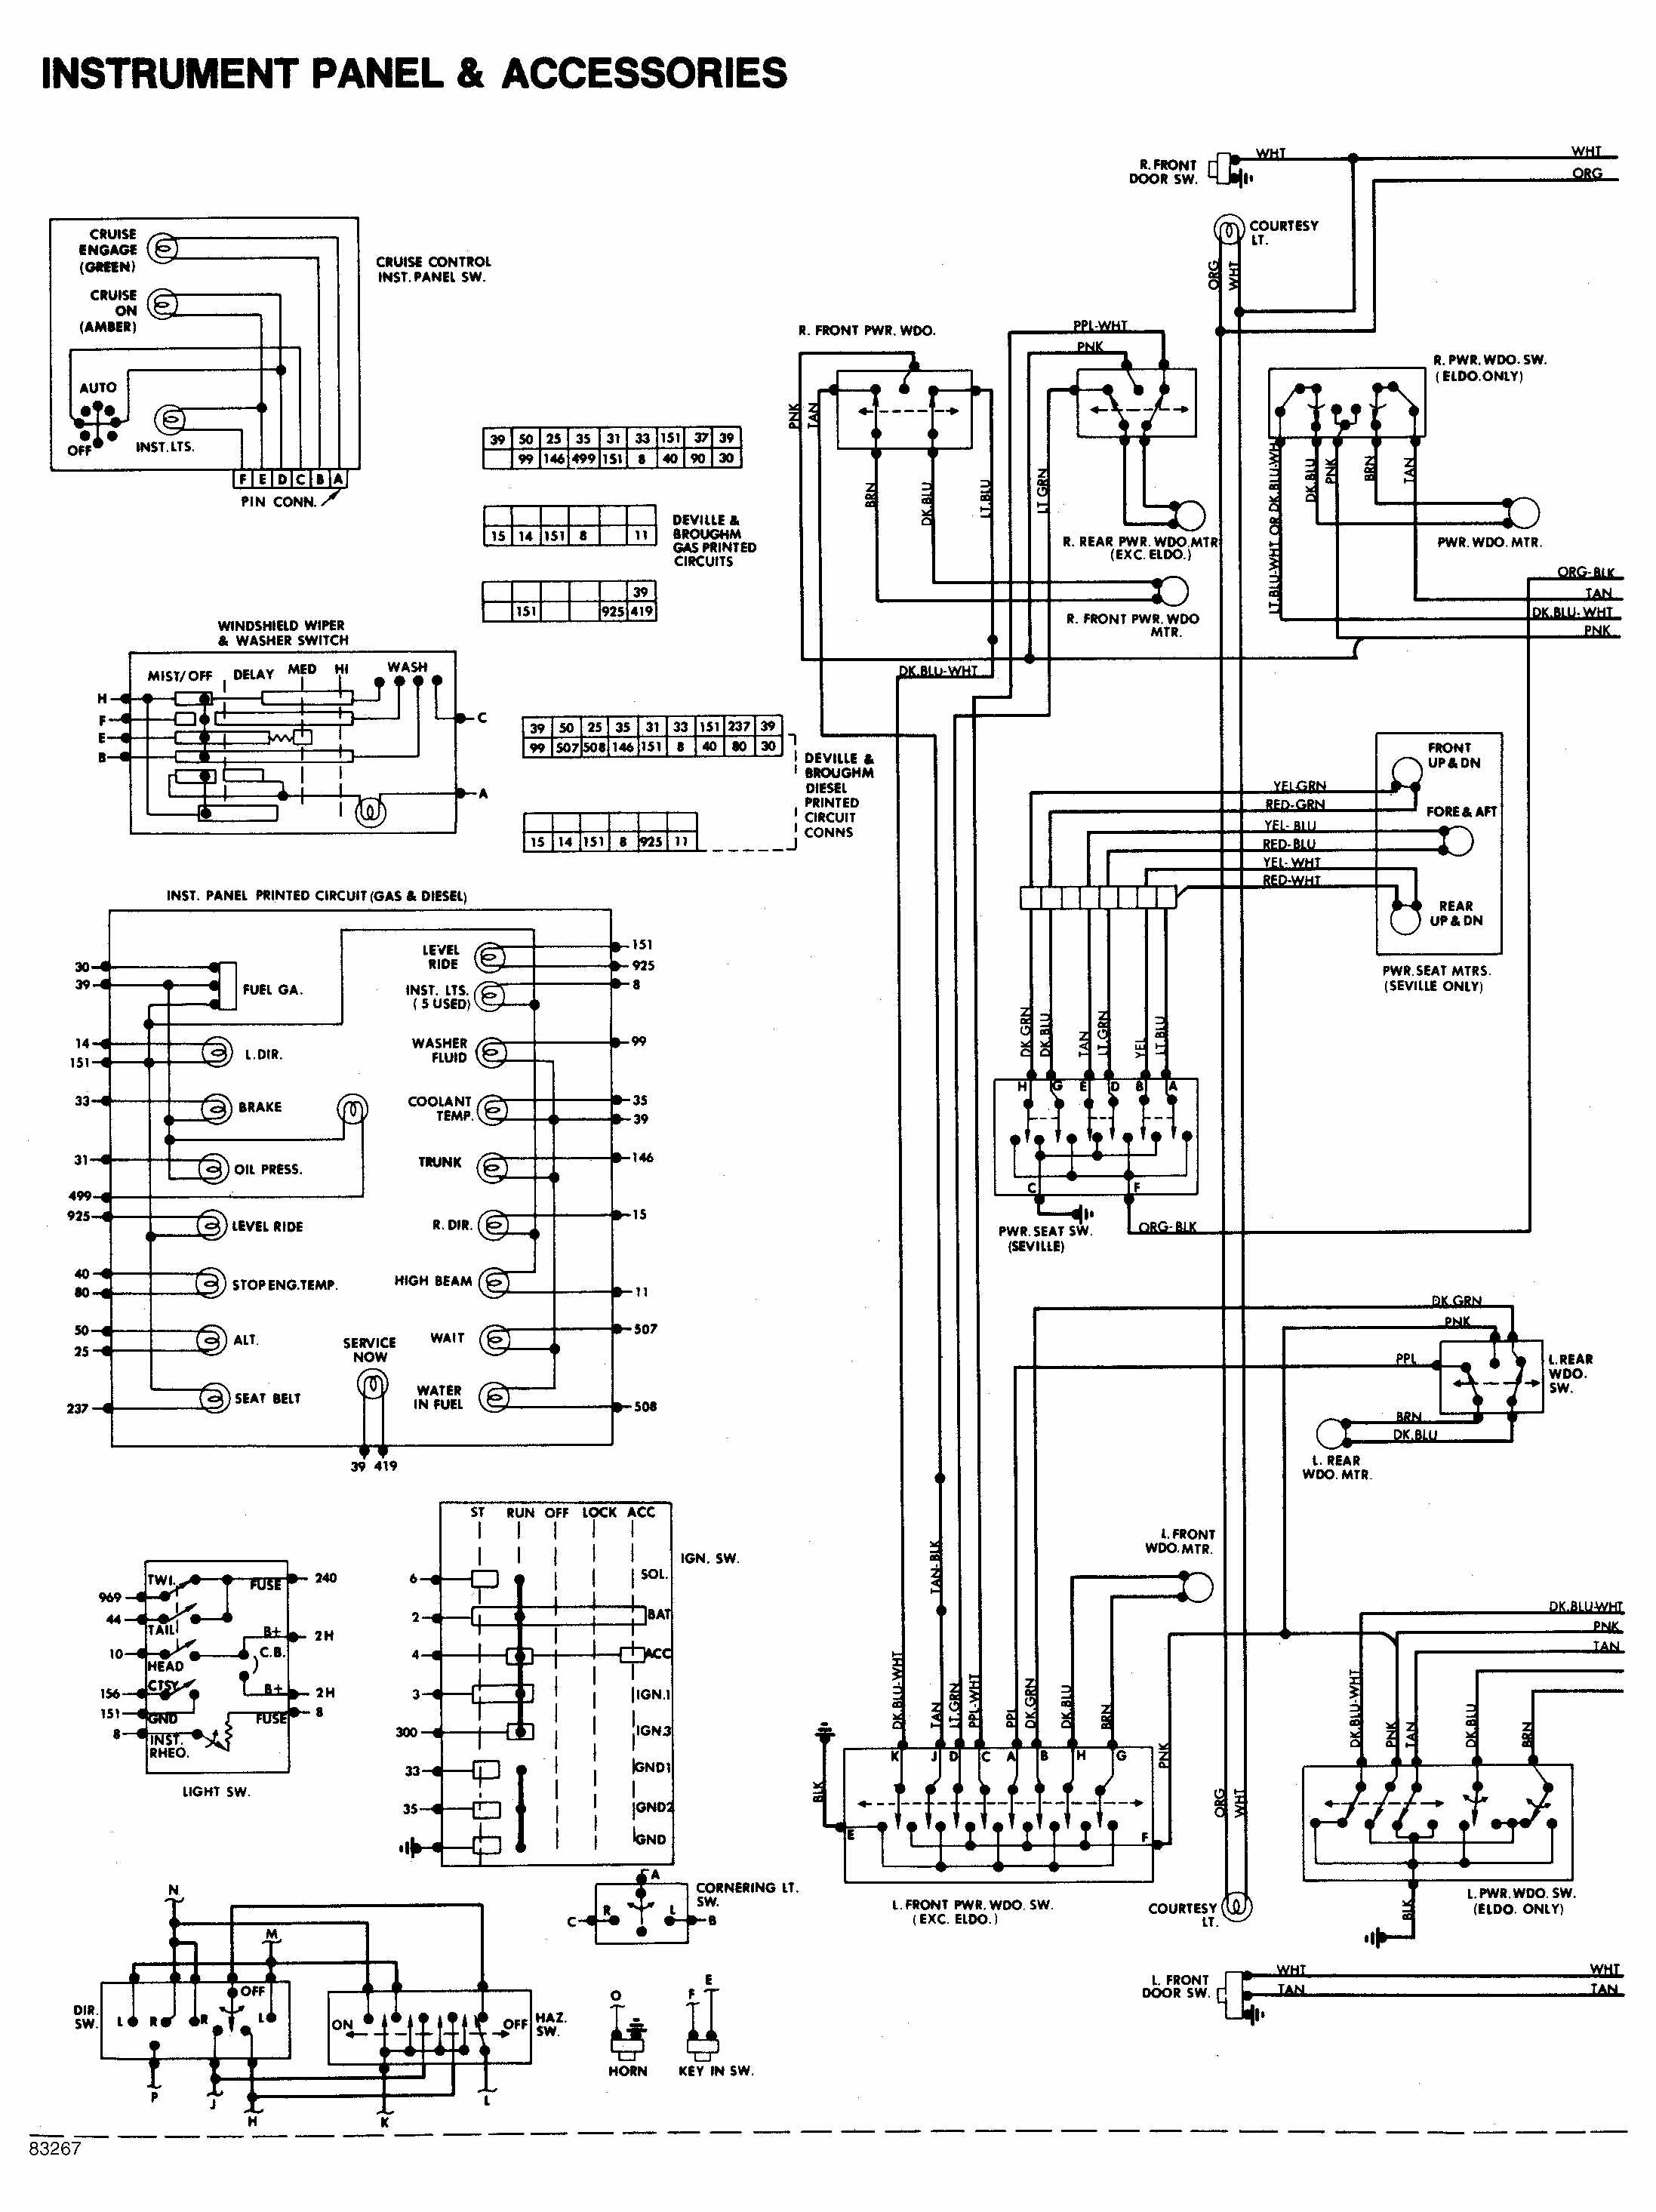 instrument panel and accessories wiring diagram of 1984 cadillac deville cadillac wiring harness ram truck wiring harness \u2022 wiring diagrams  at cos-gaming.co